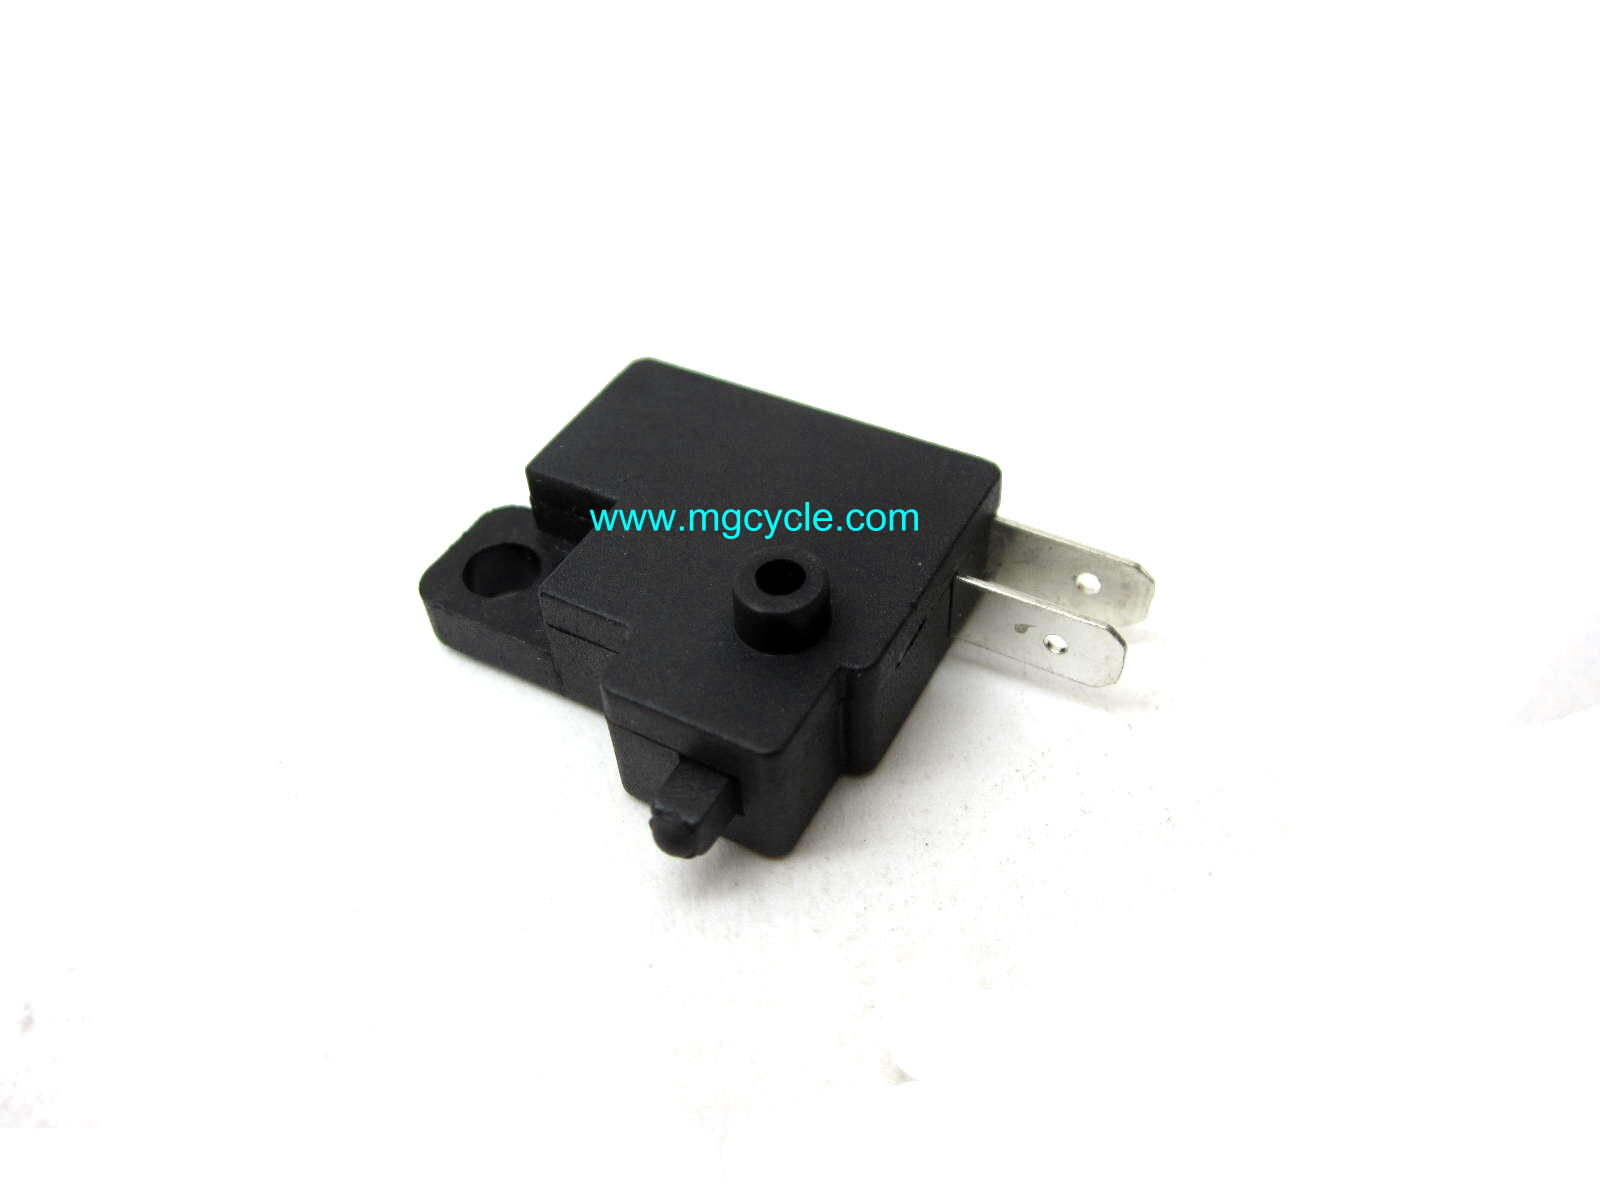 hand brake microswitch for paddle type brake levers since '02